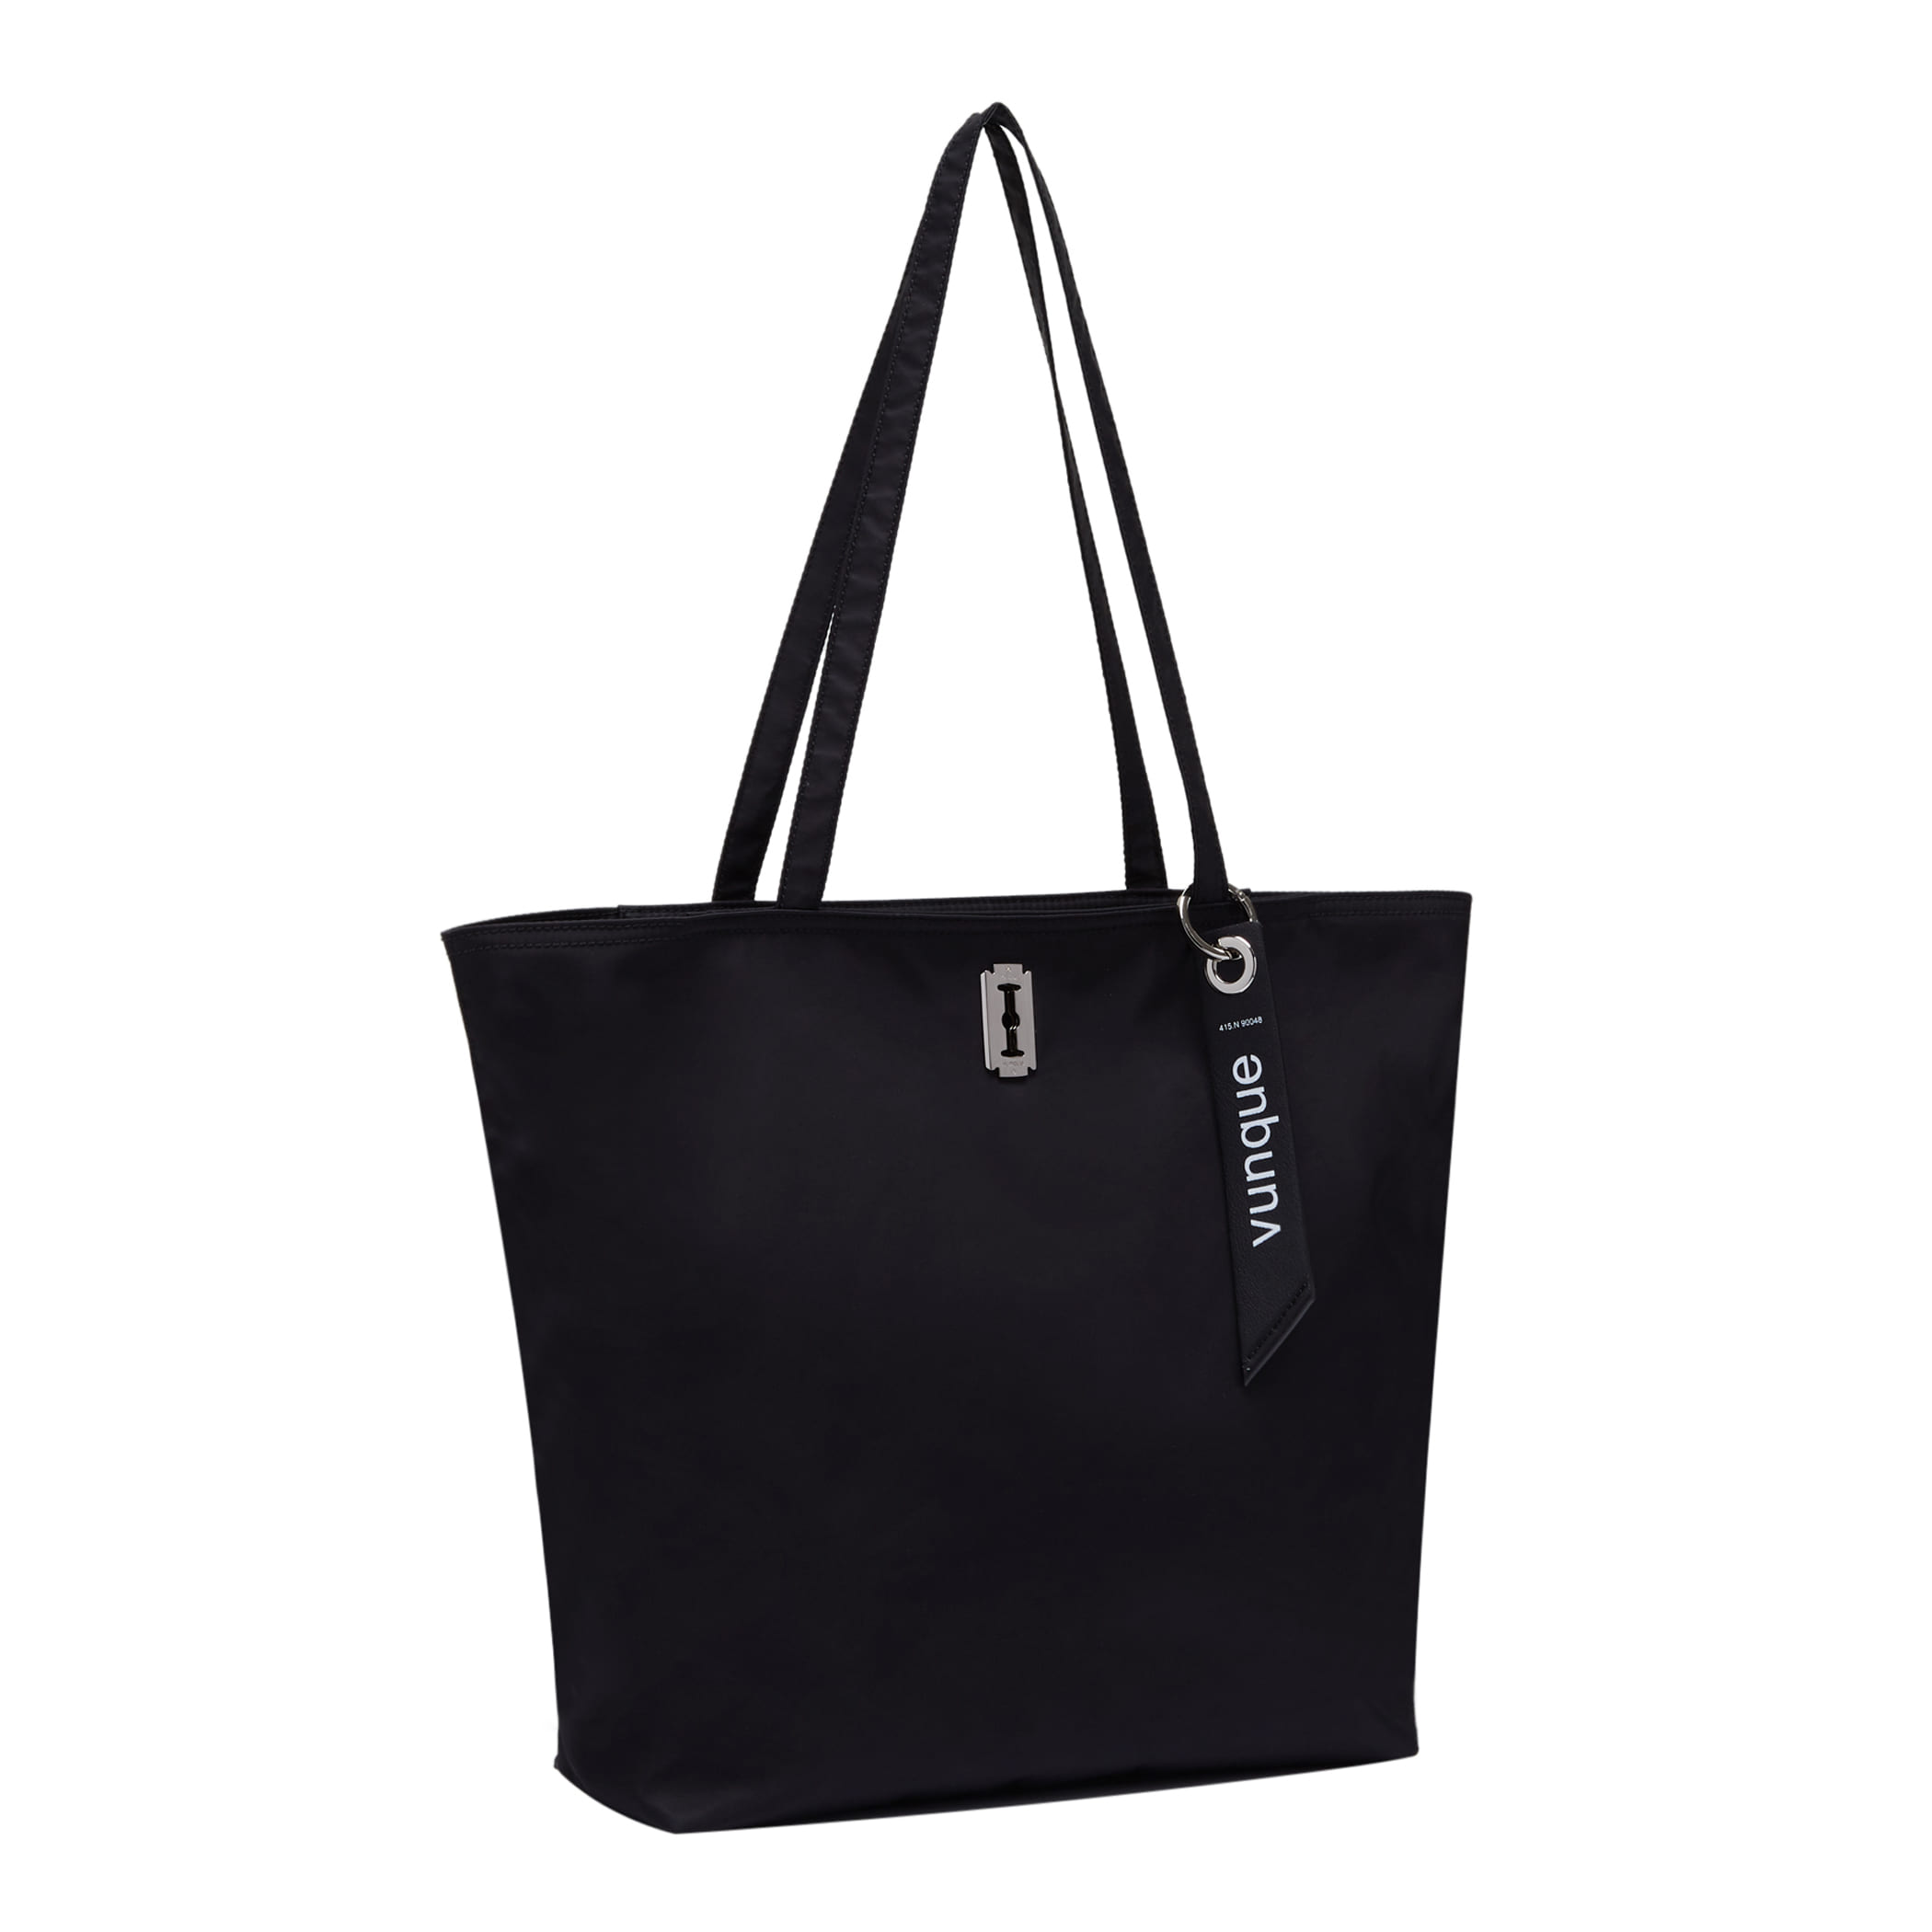 Hey Pass Shopper Bag (헤이 패스 쇼퍼백) Black